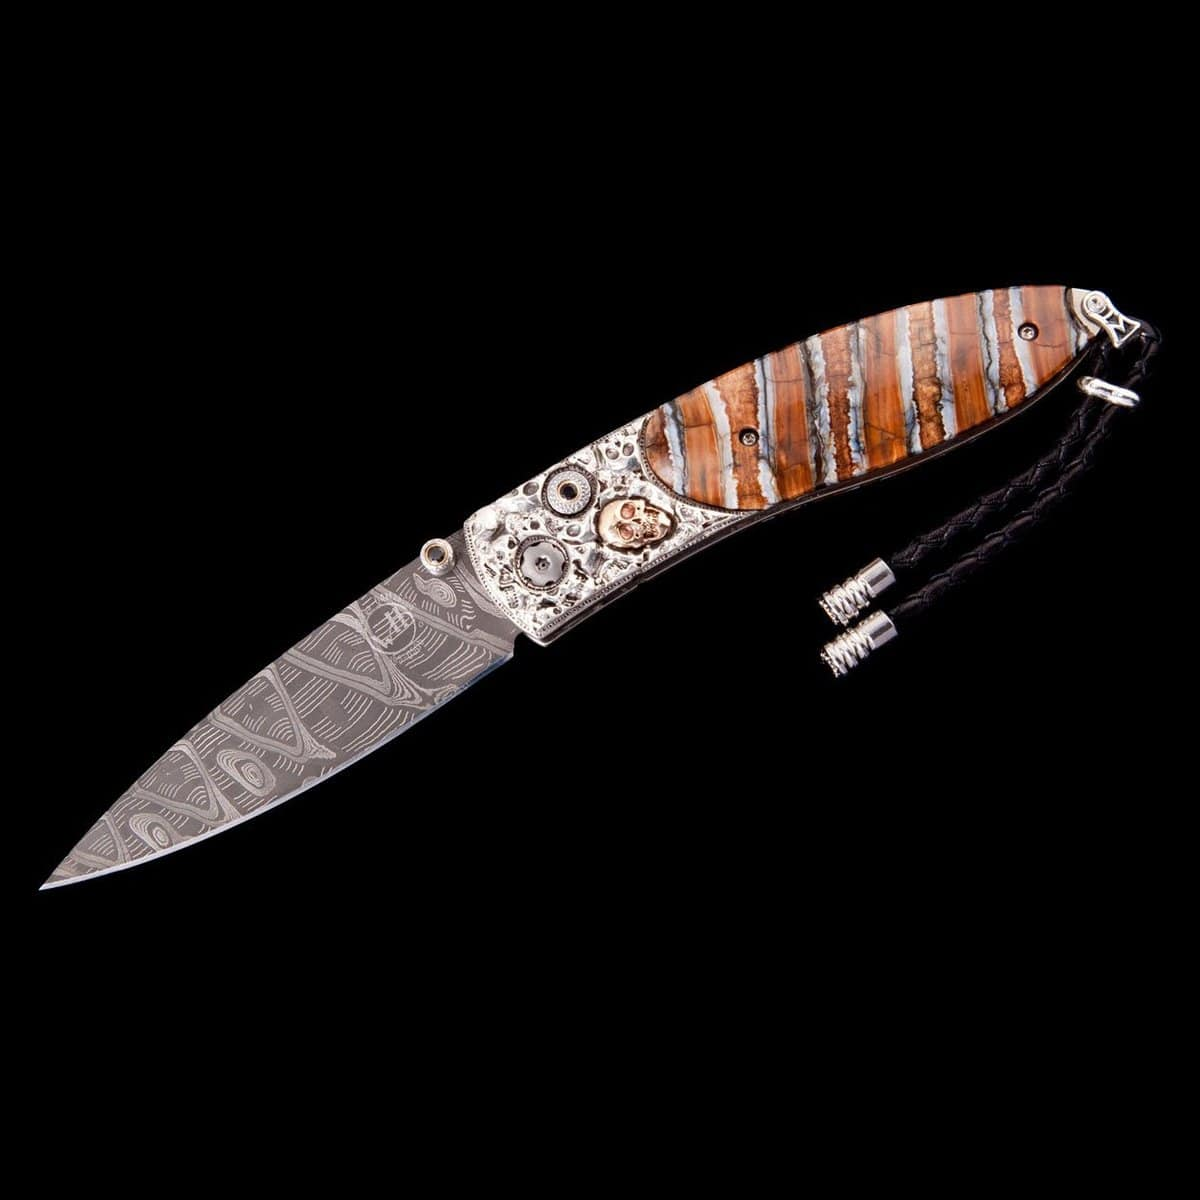 Monarch Last Dance Limited Edition Knife - B05 LAST DANCE-William Henry-Renee Taylor Gallery